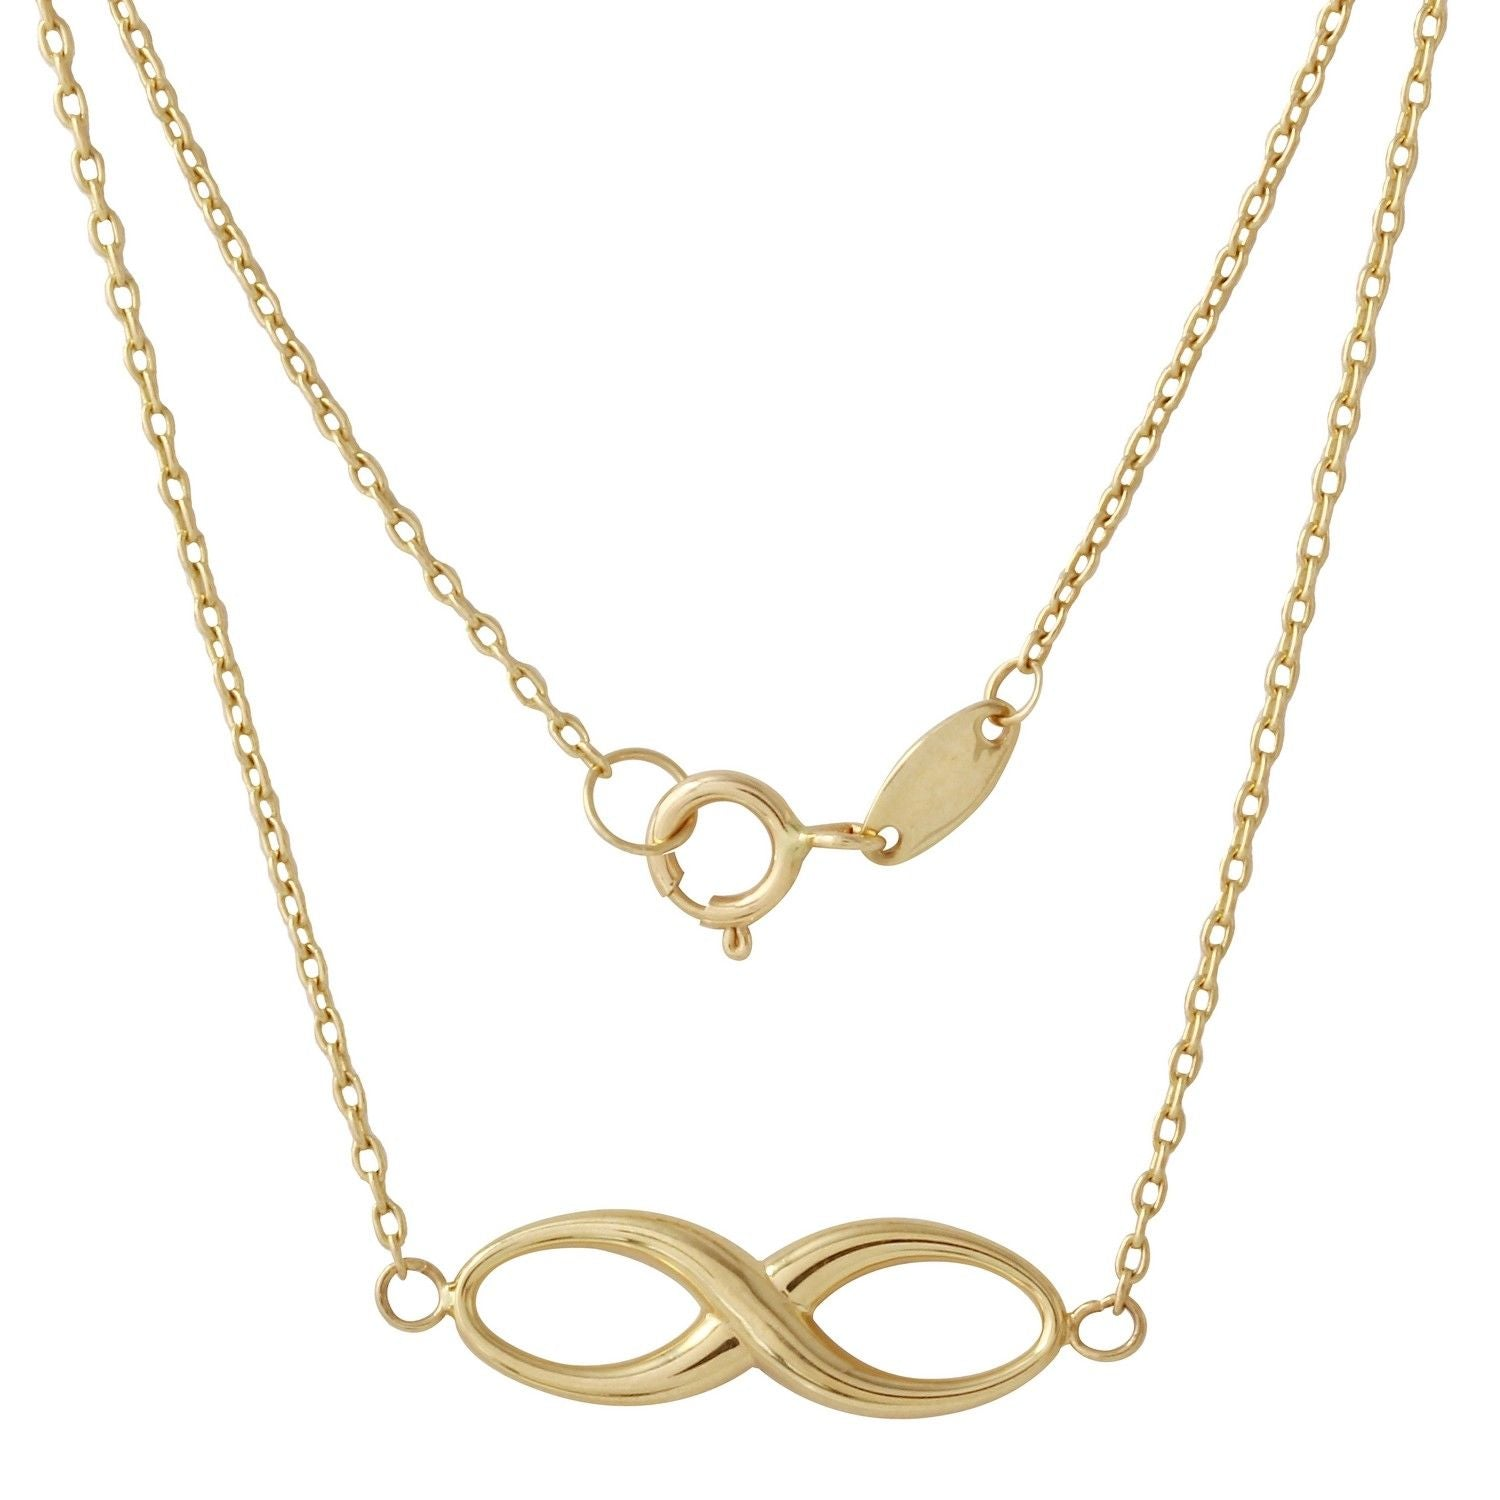 14k Yellow Gold Infinity Pendant Necklace, 18